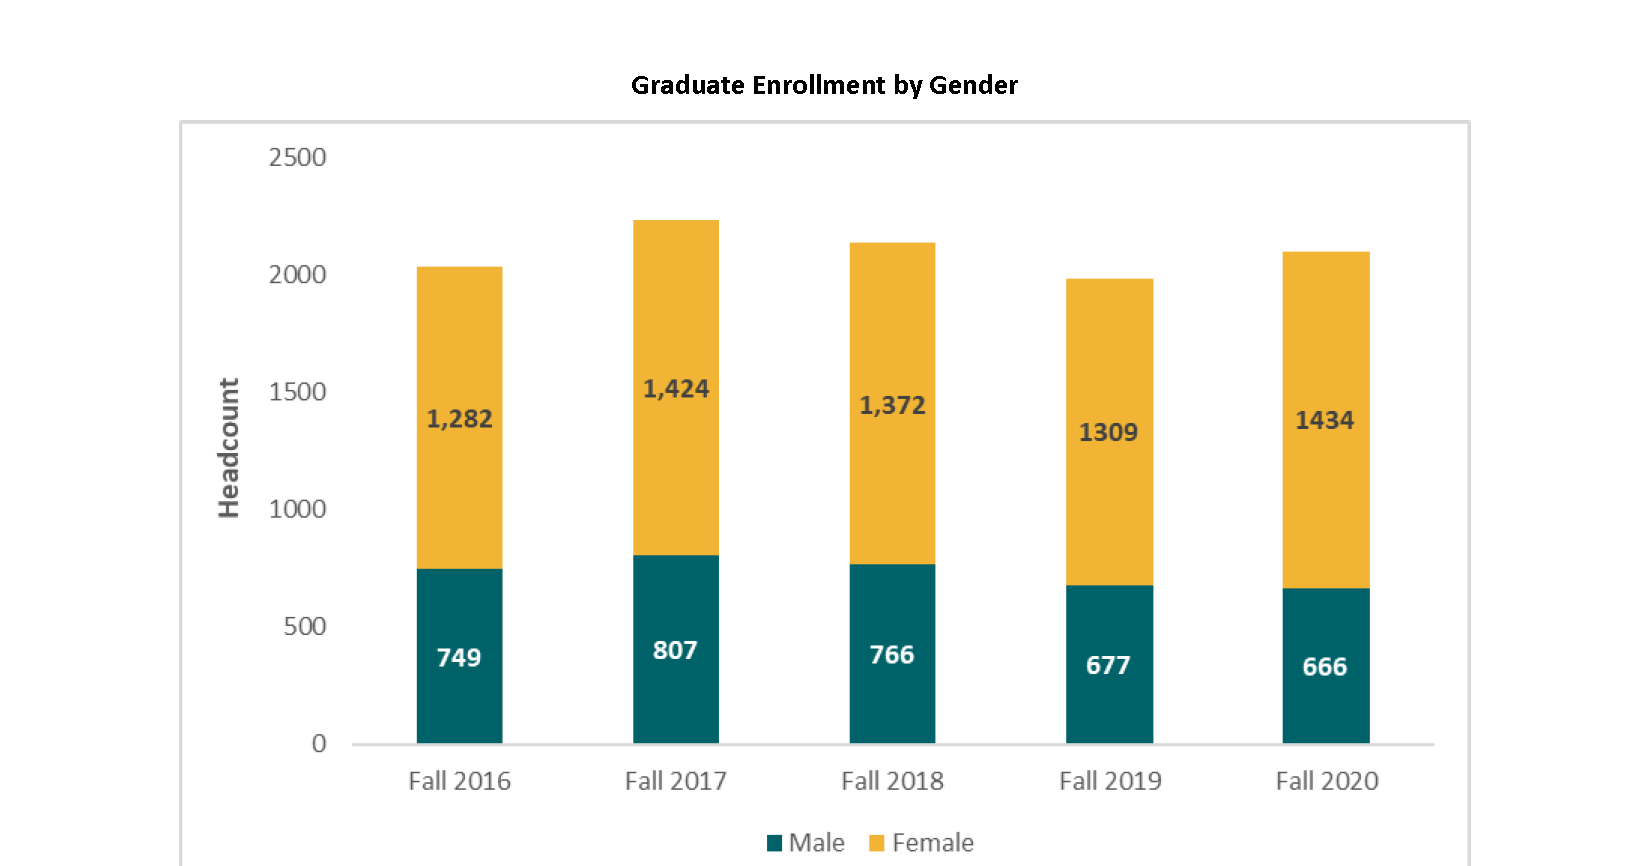 Graduate Enrollment by Gender